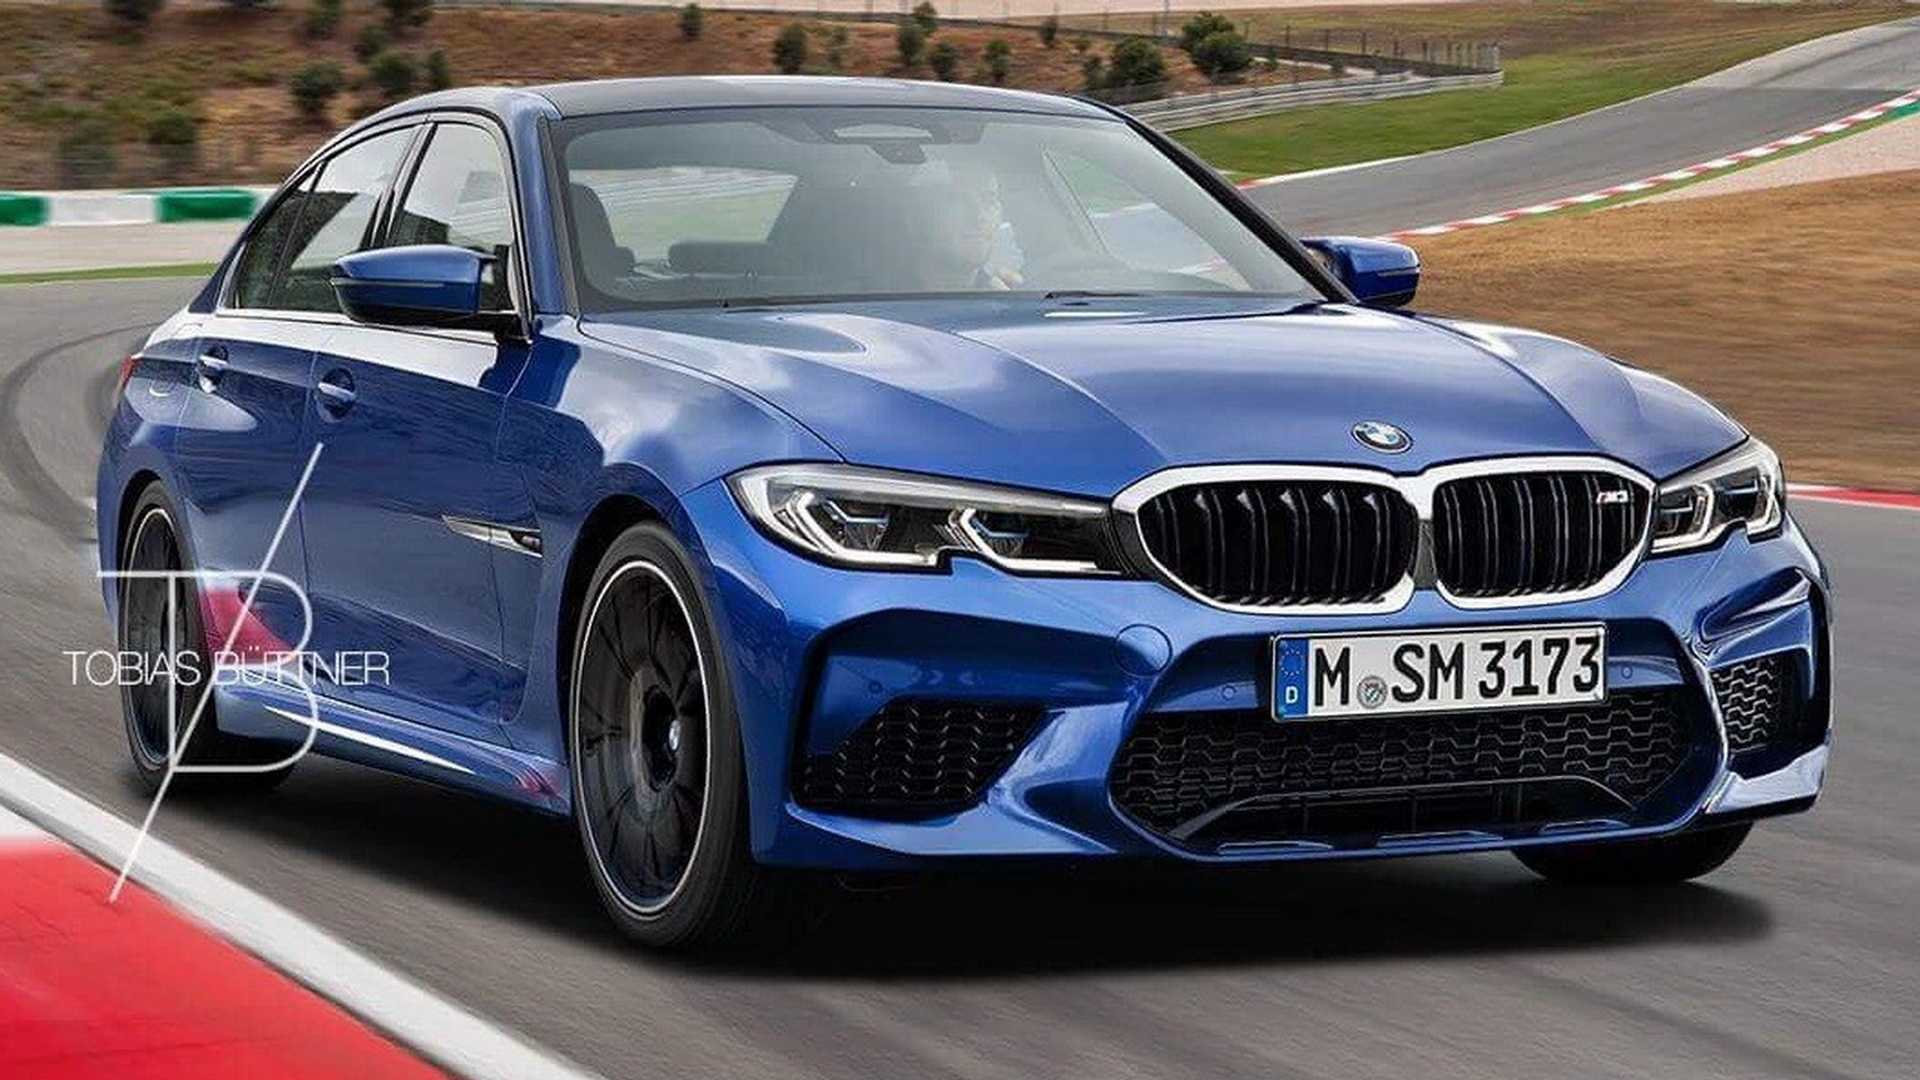 26 The Best 2020 BMW M4 Exterior And Interior